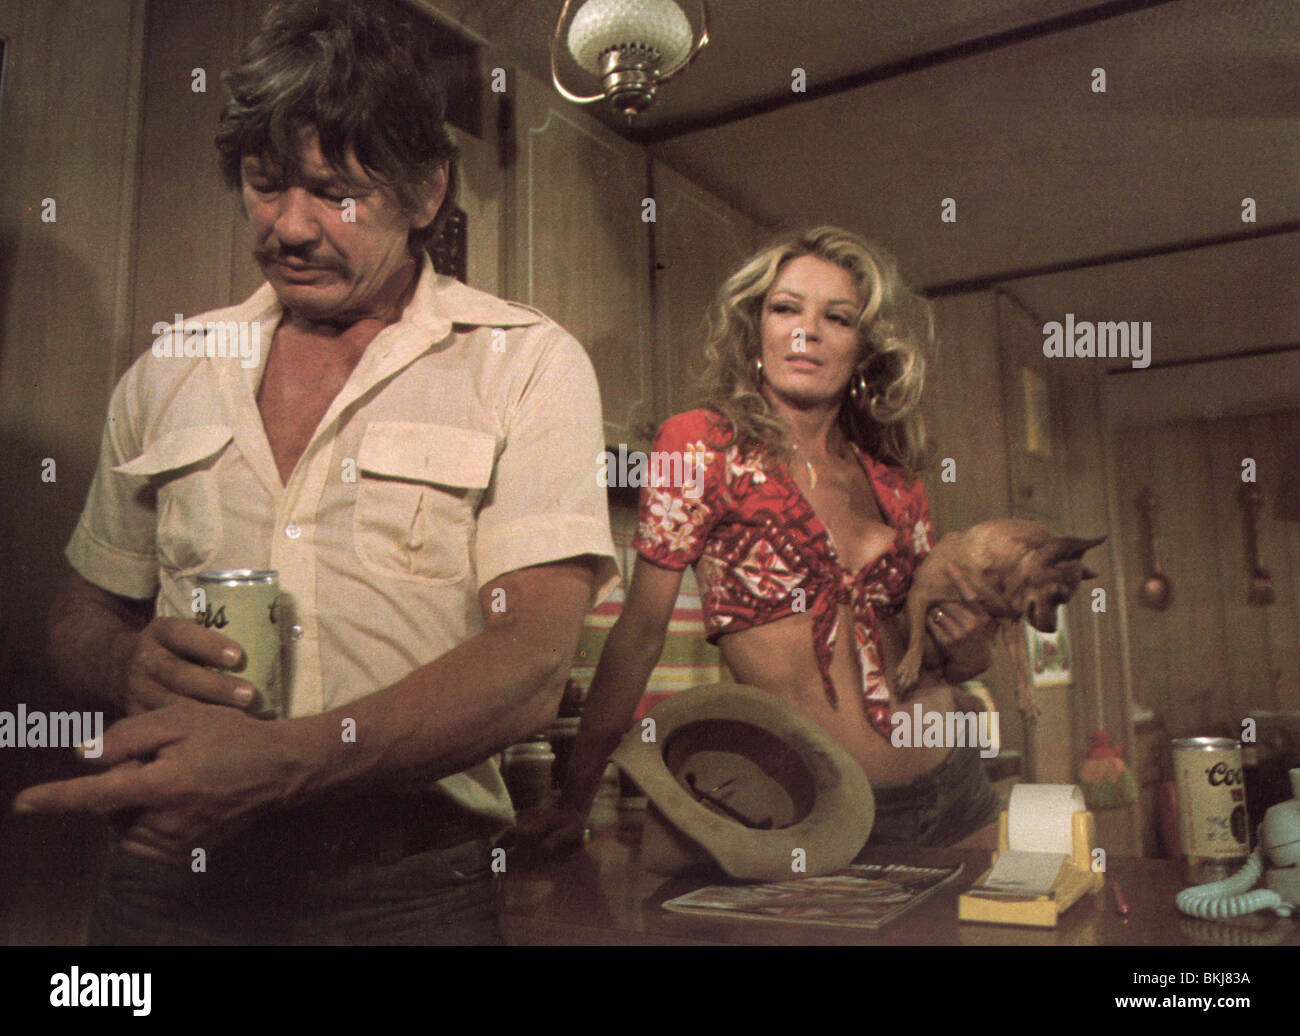 breakout 1975 charles bronson sheree north brko 005foh